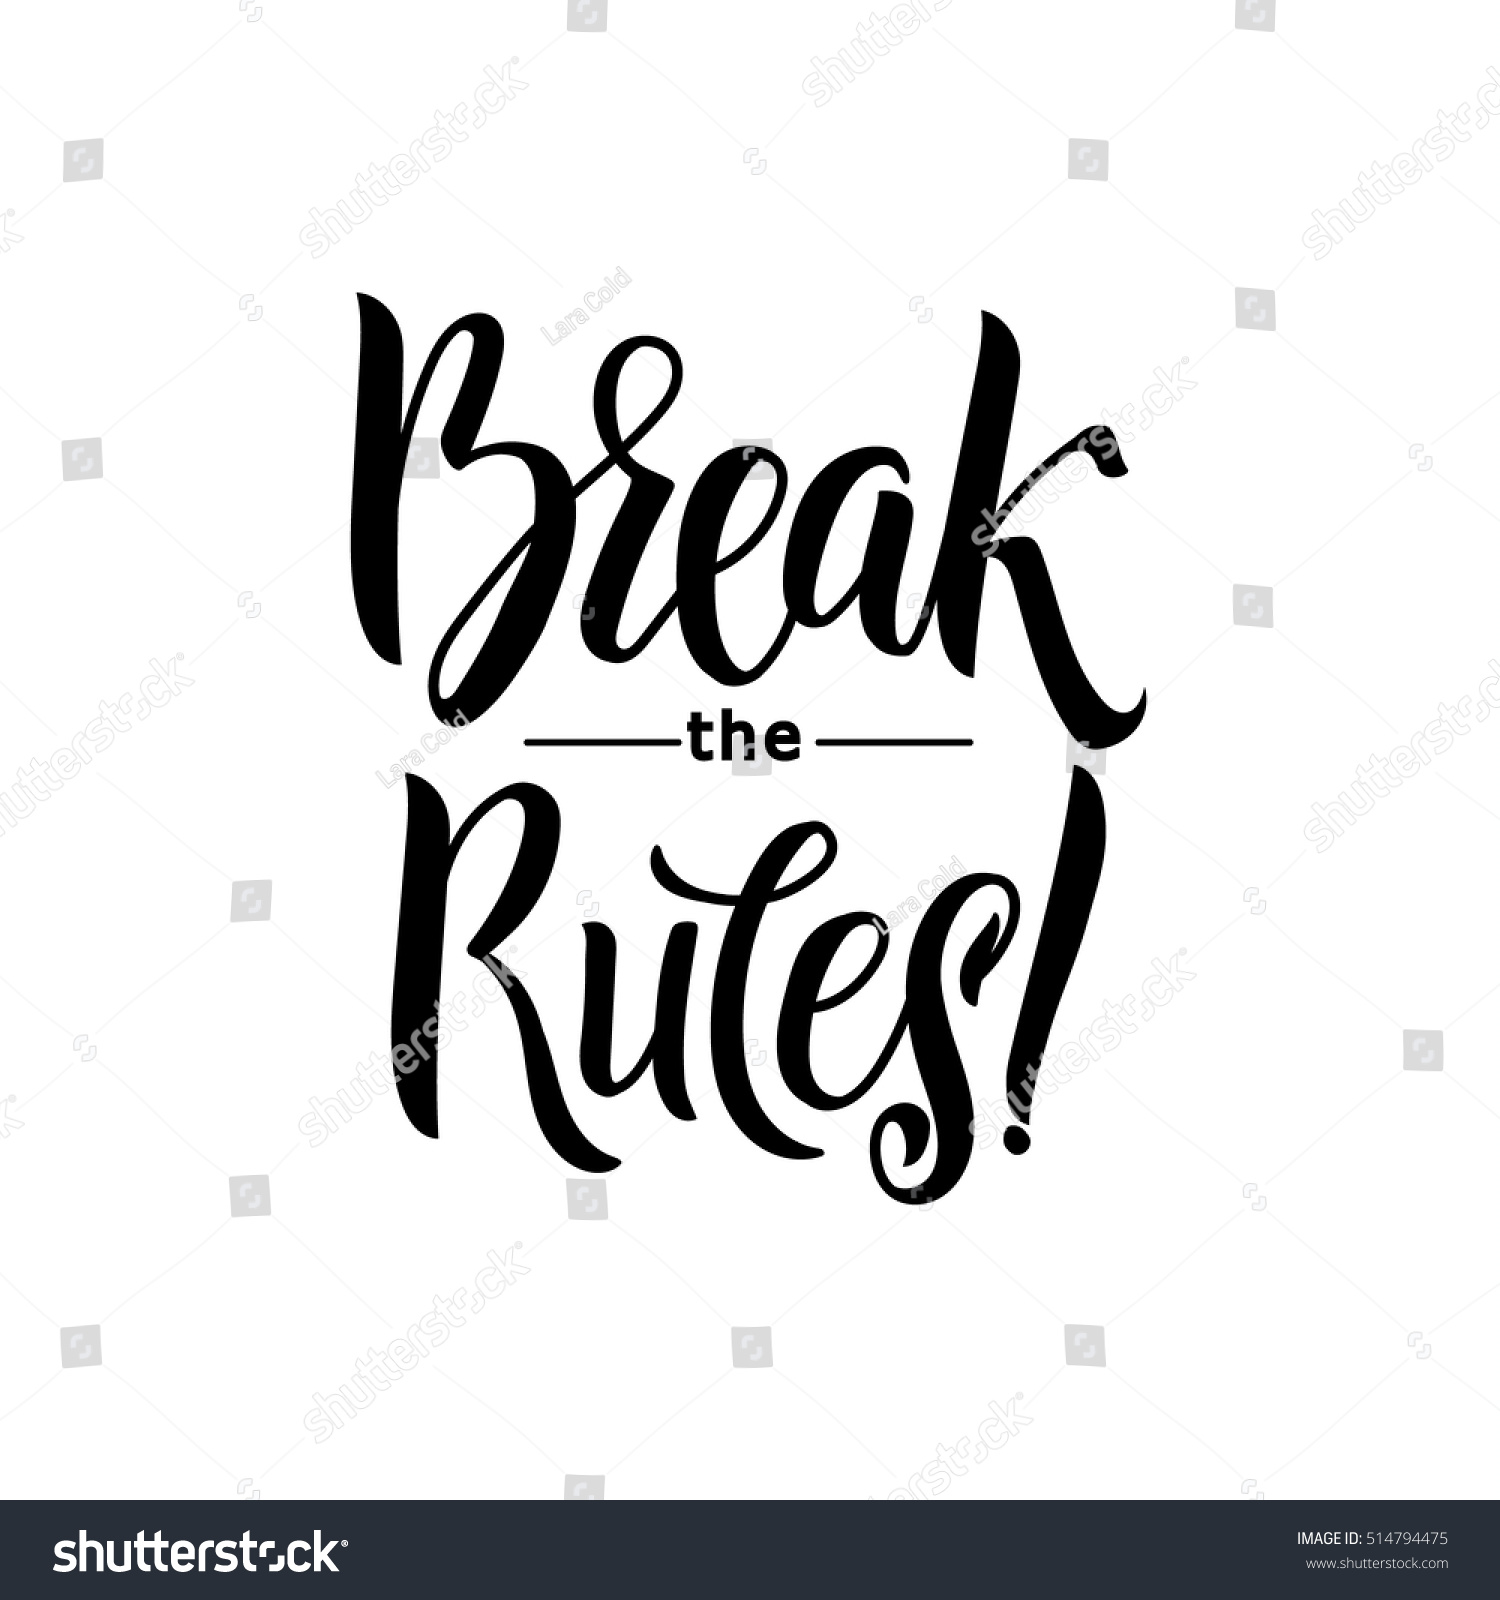 Break rules keep going hand drawn stock vector